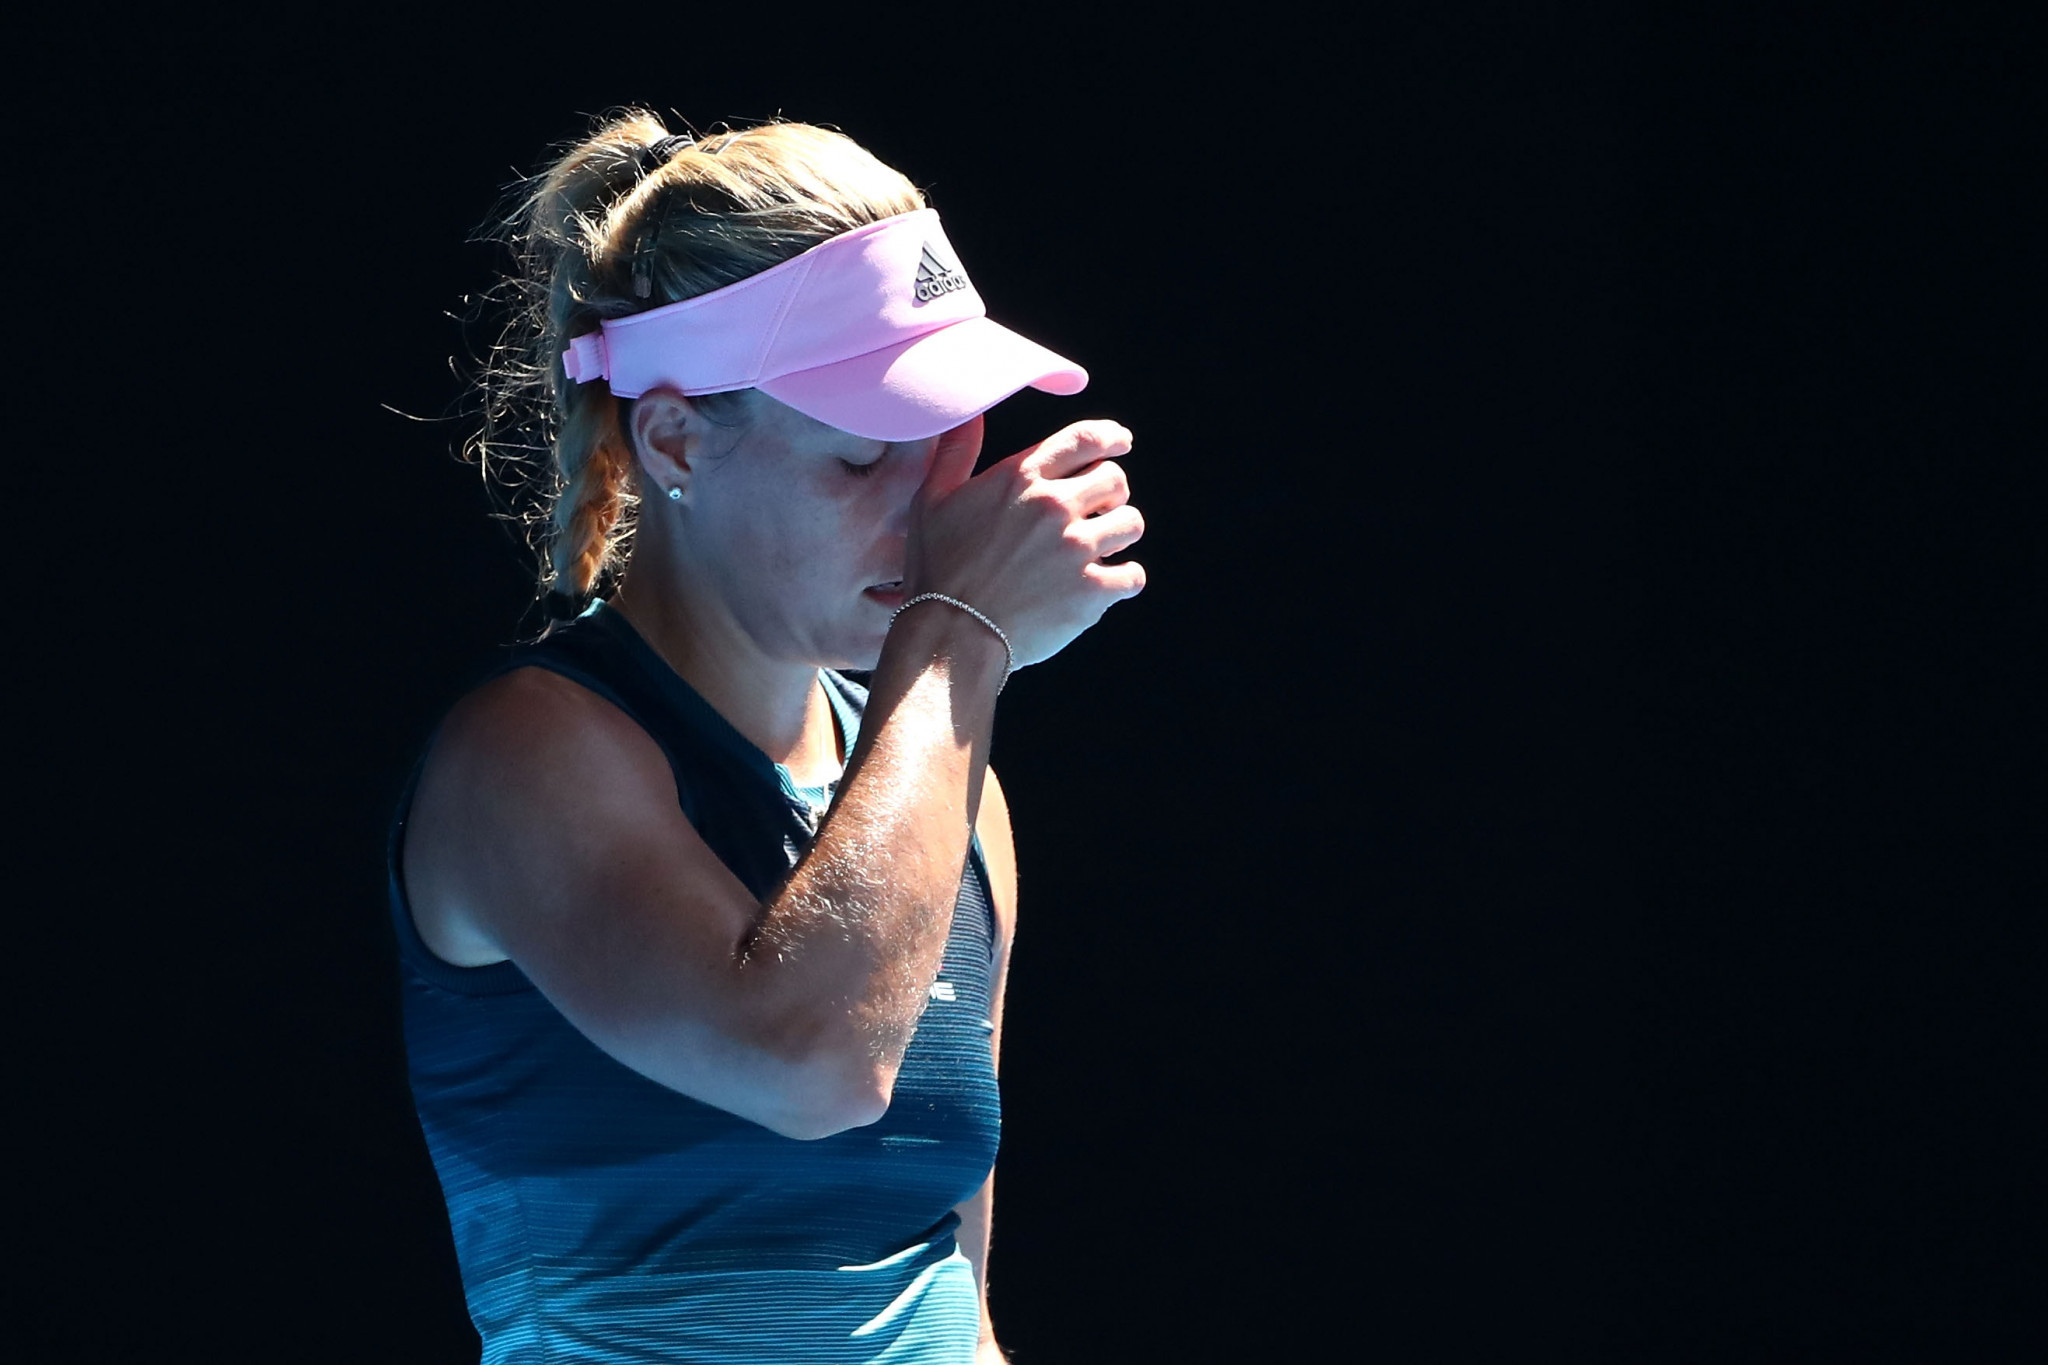 World number two Angelique Kerber suffered a surprise defeat ©Getty Images